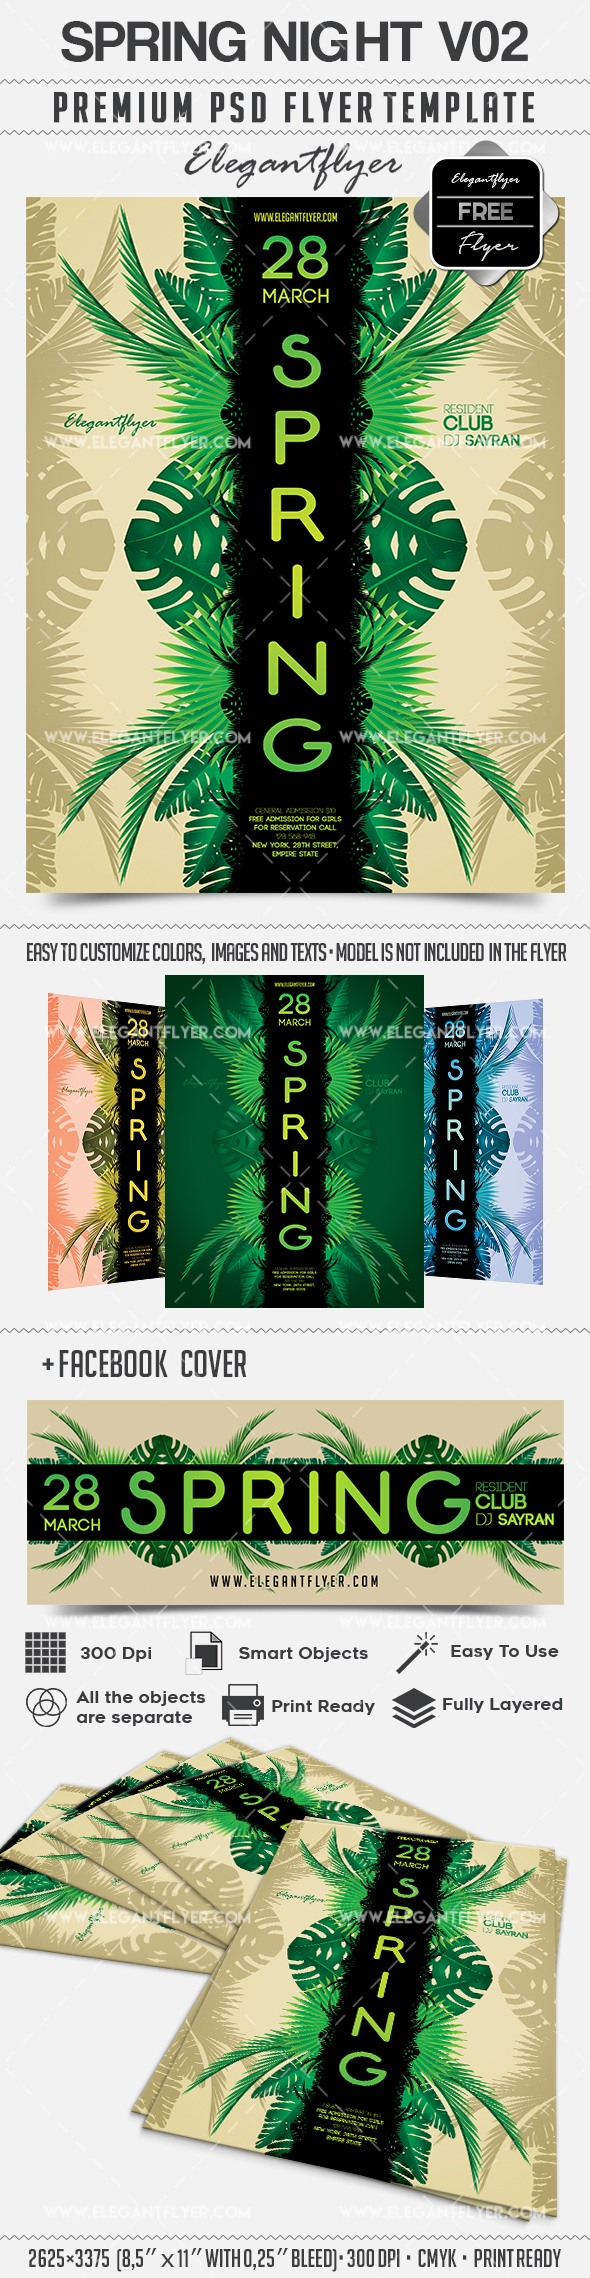 Spring Night V02 – Free Flyer PSD Template + Facebook Cover